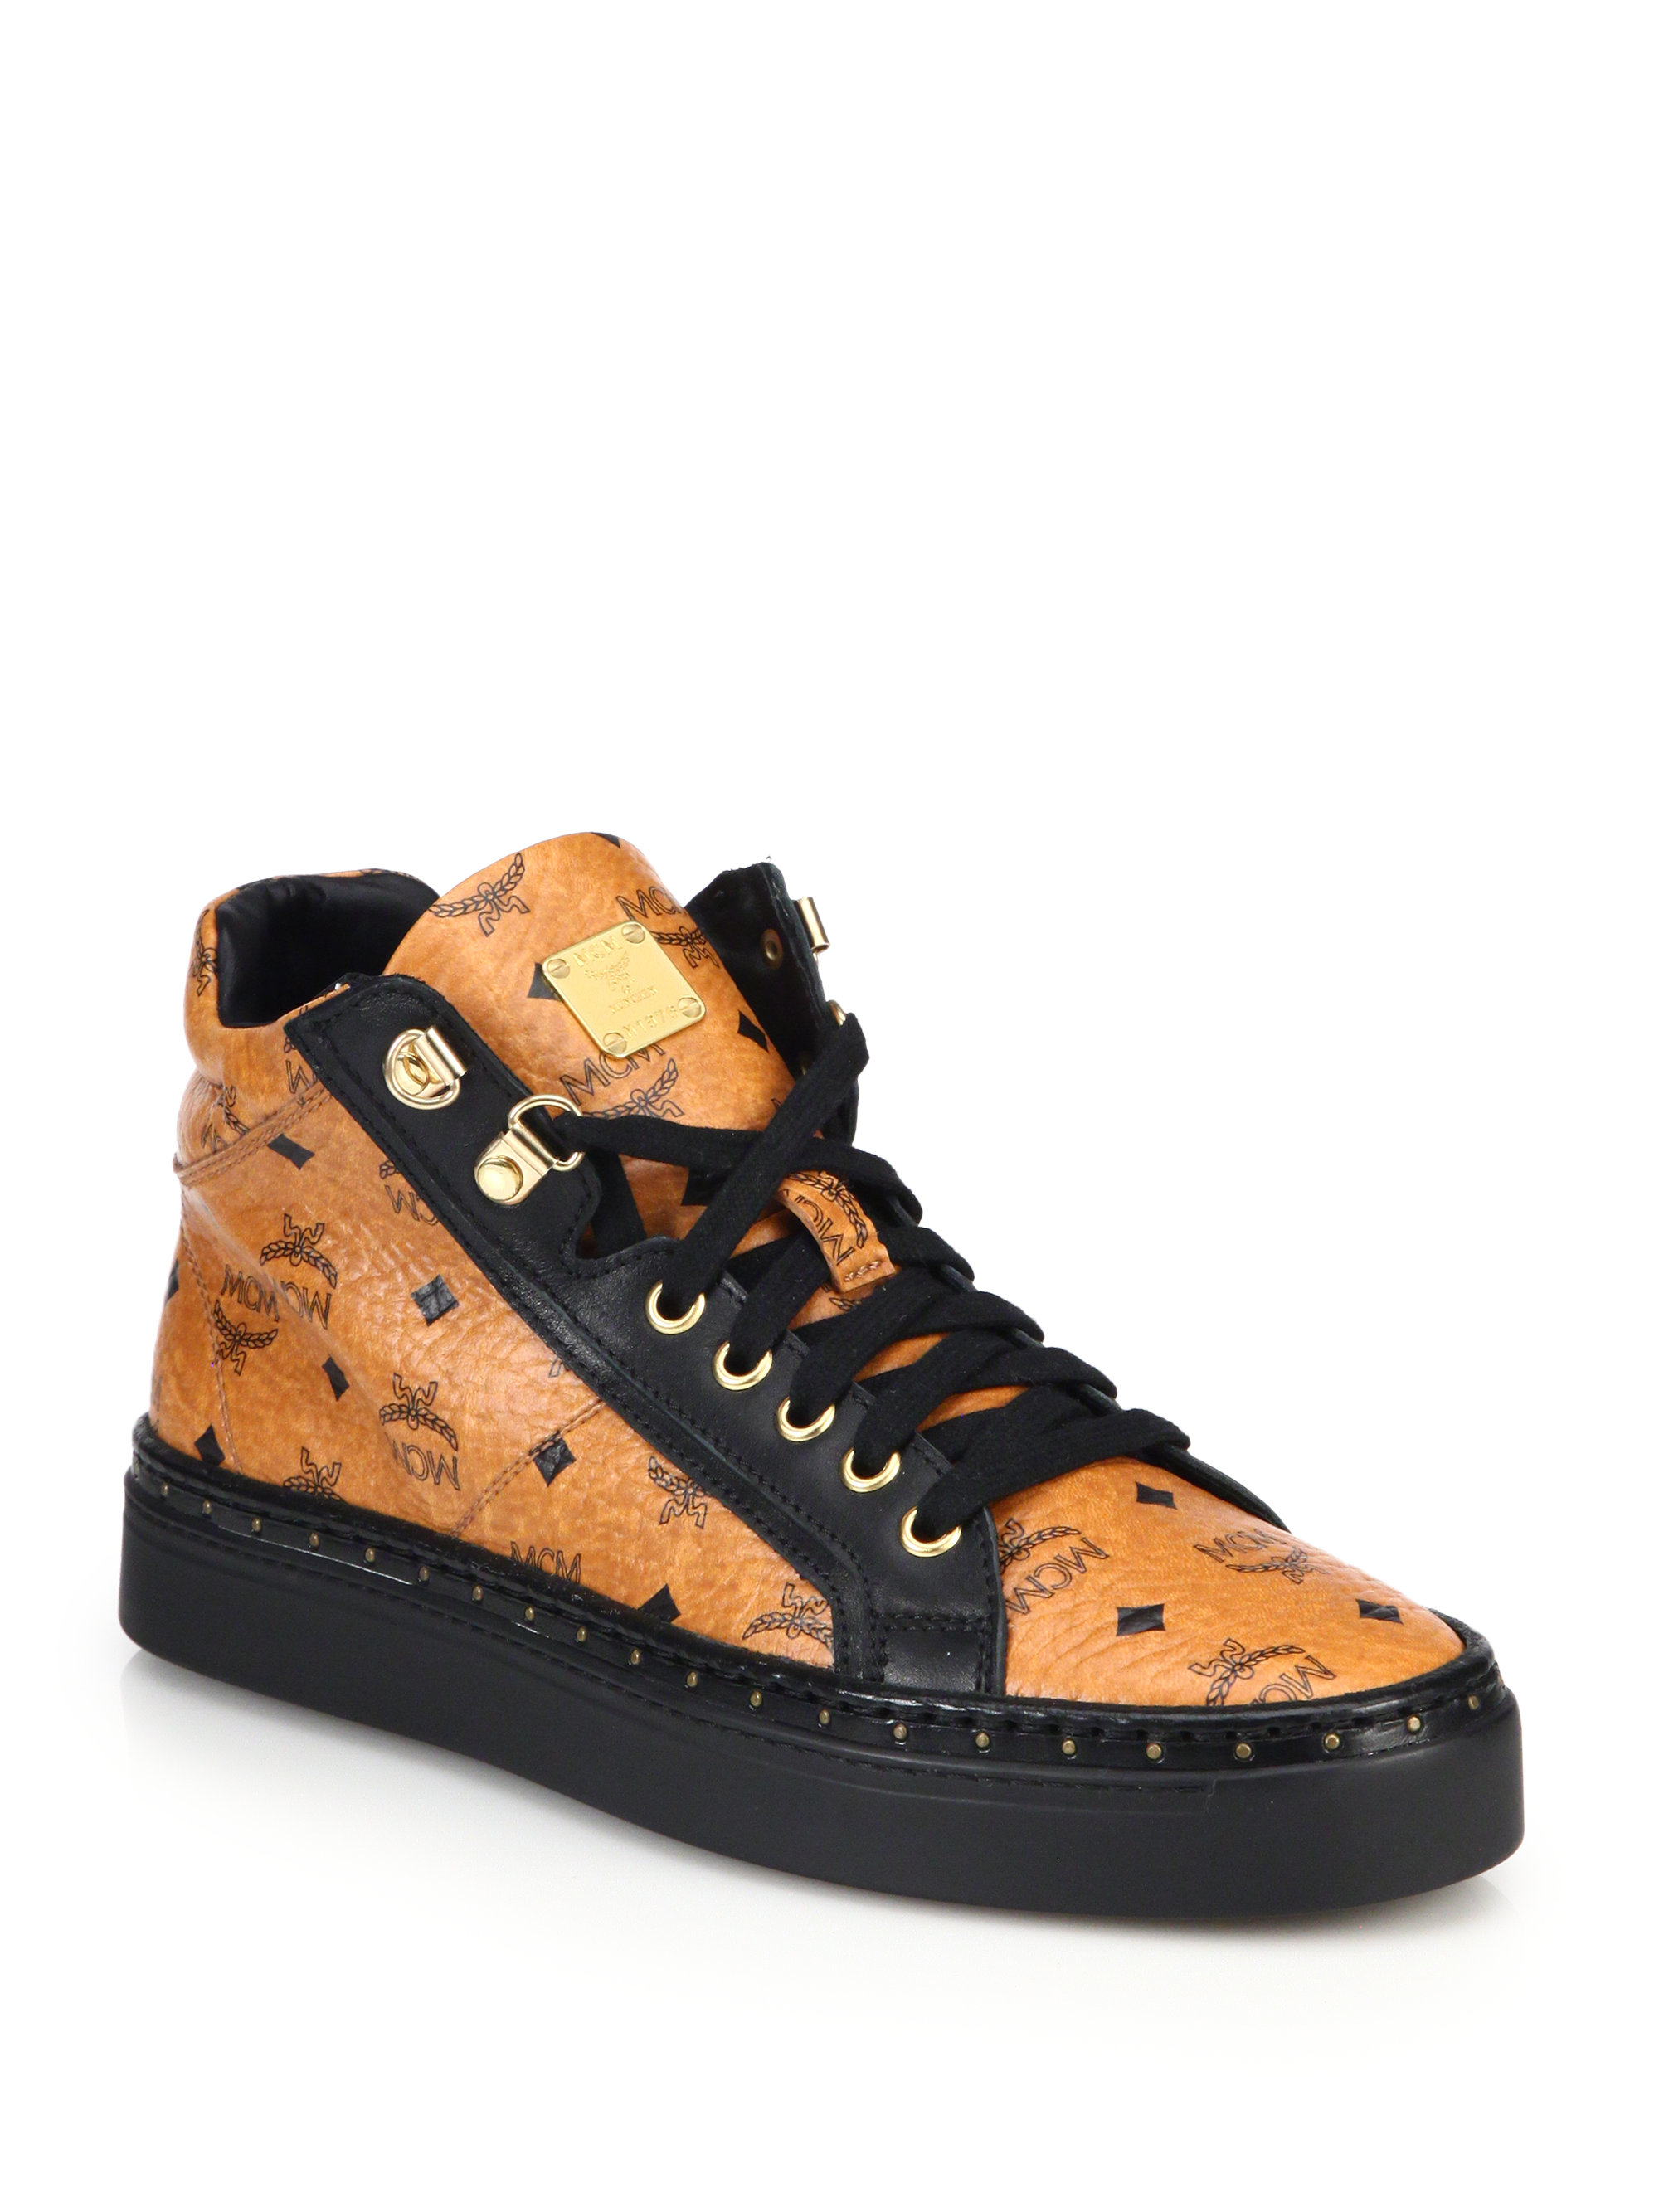 mcm coated canvas mid top sneakers in brown for lyst